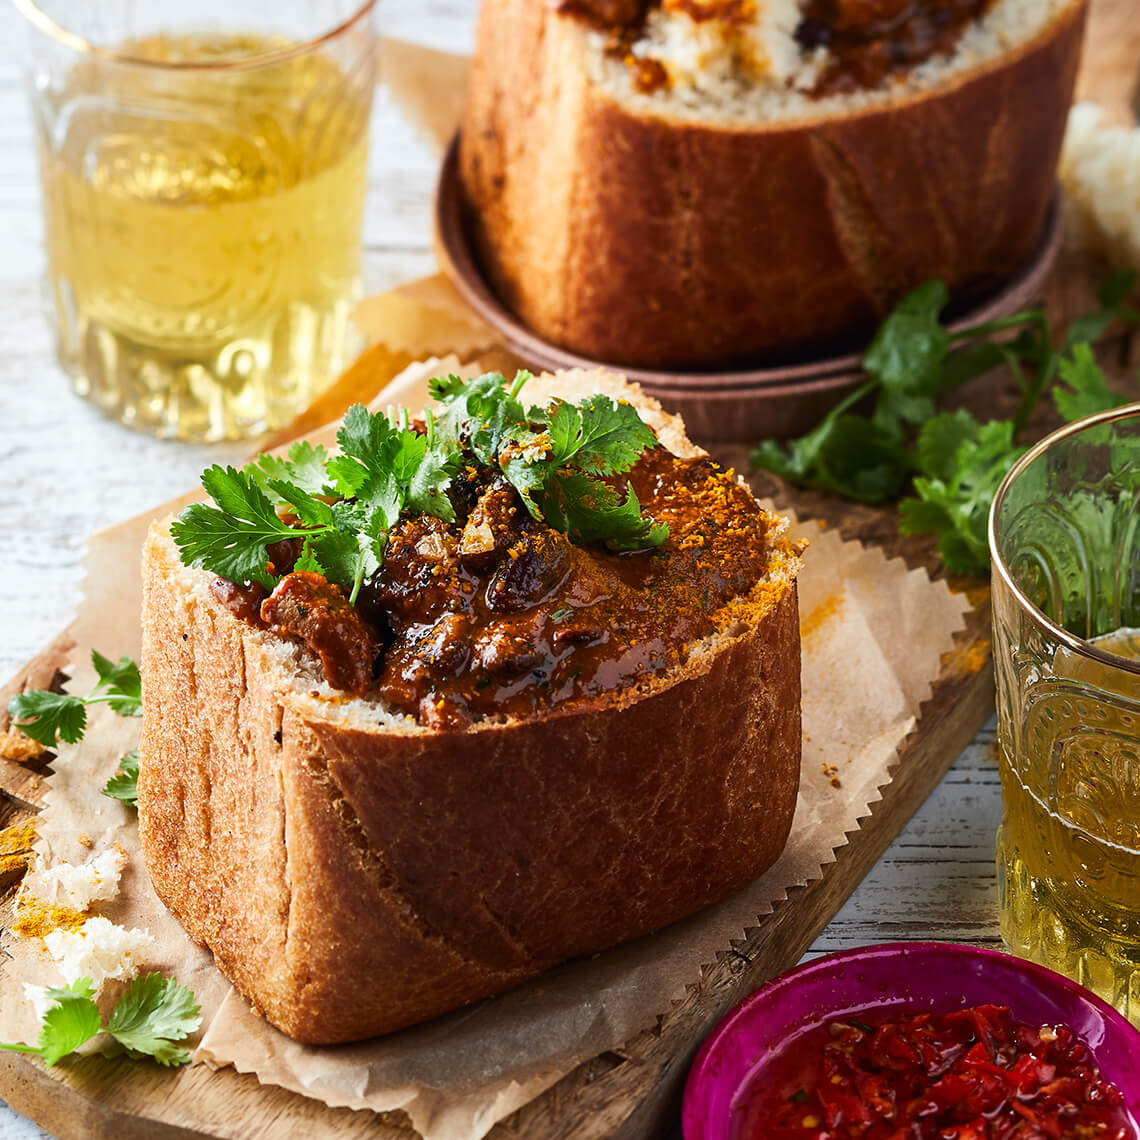 Beef-and-bean bunny chow